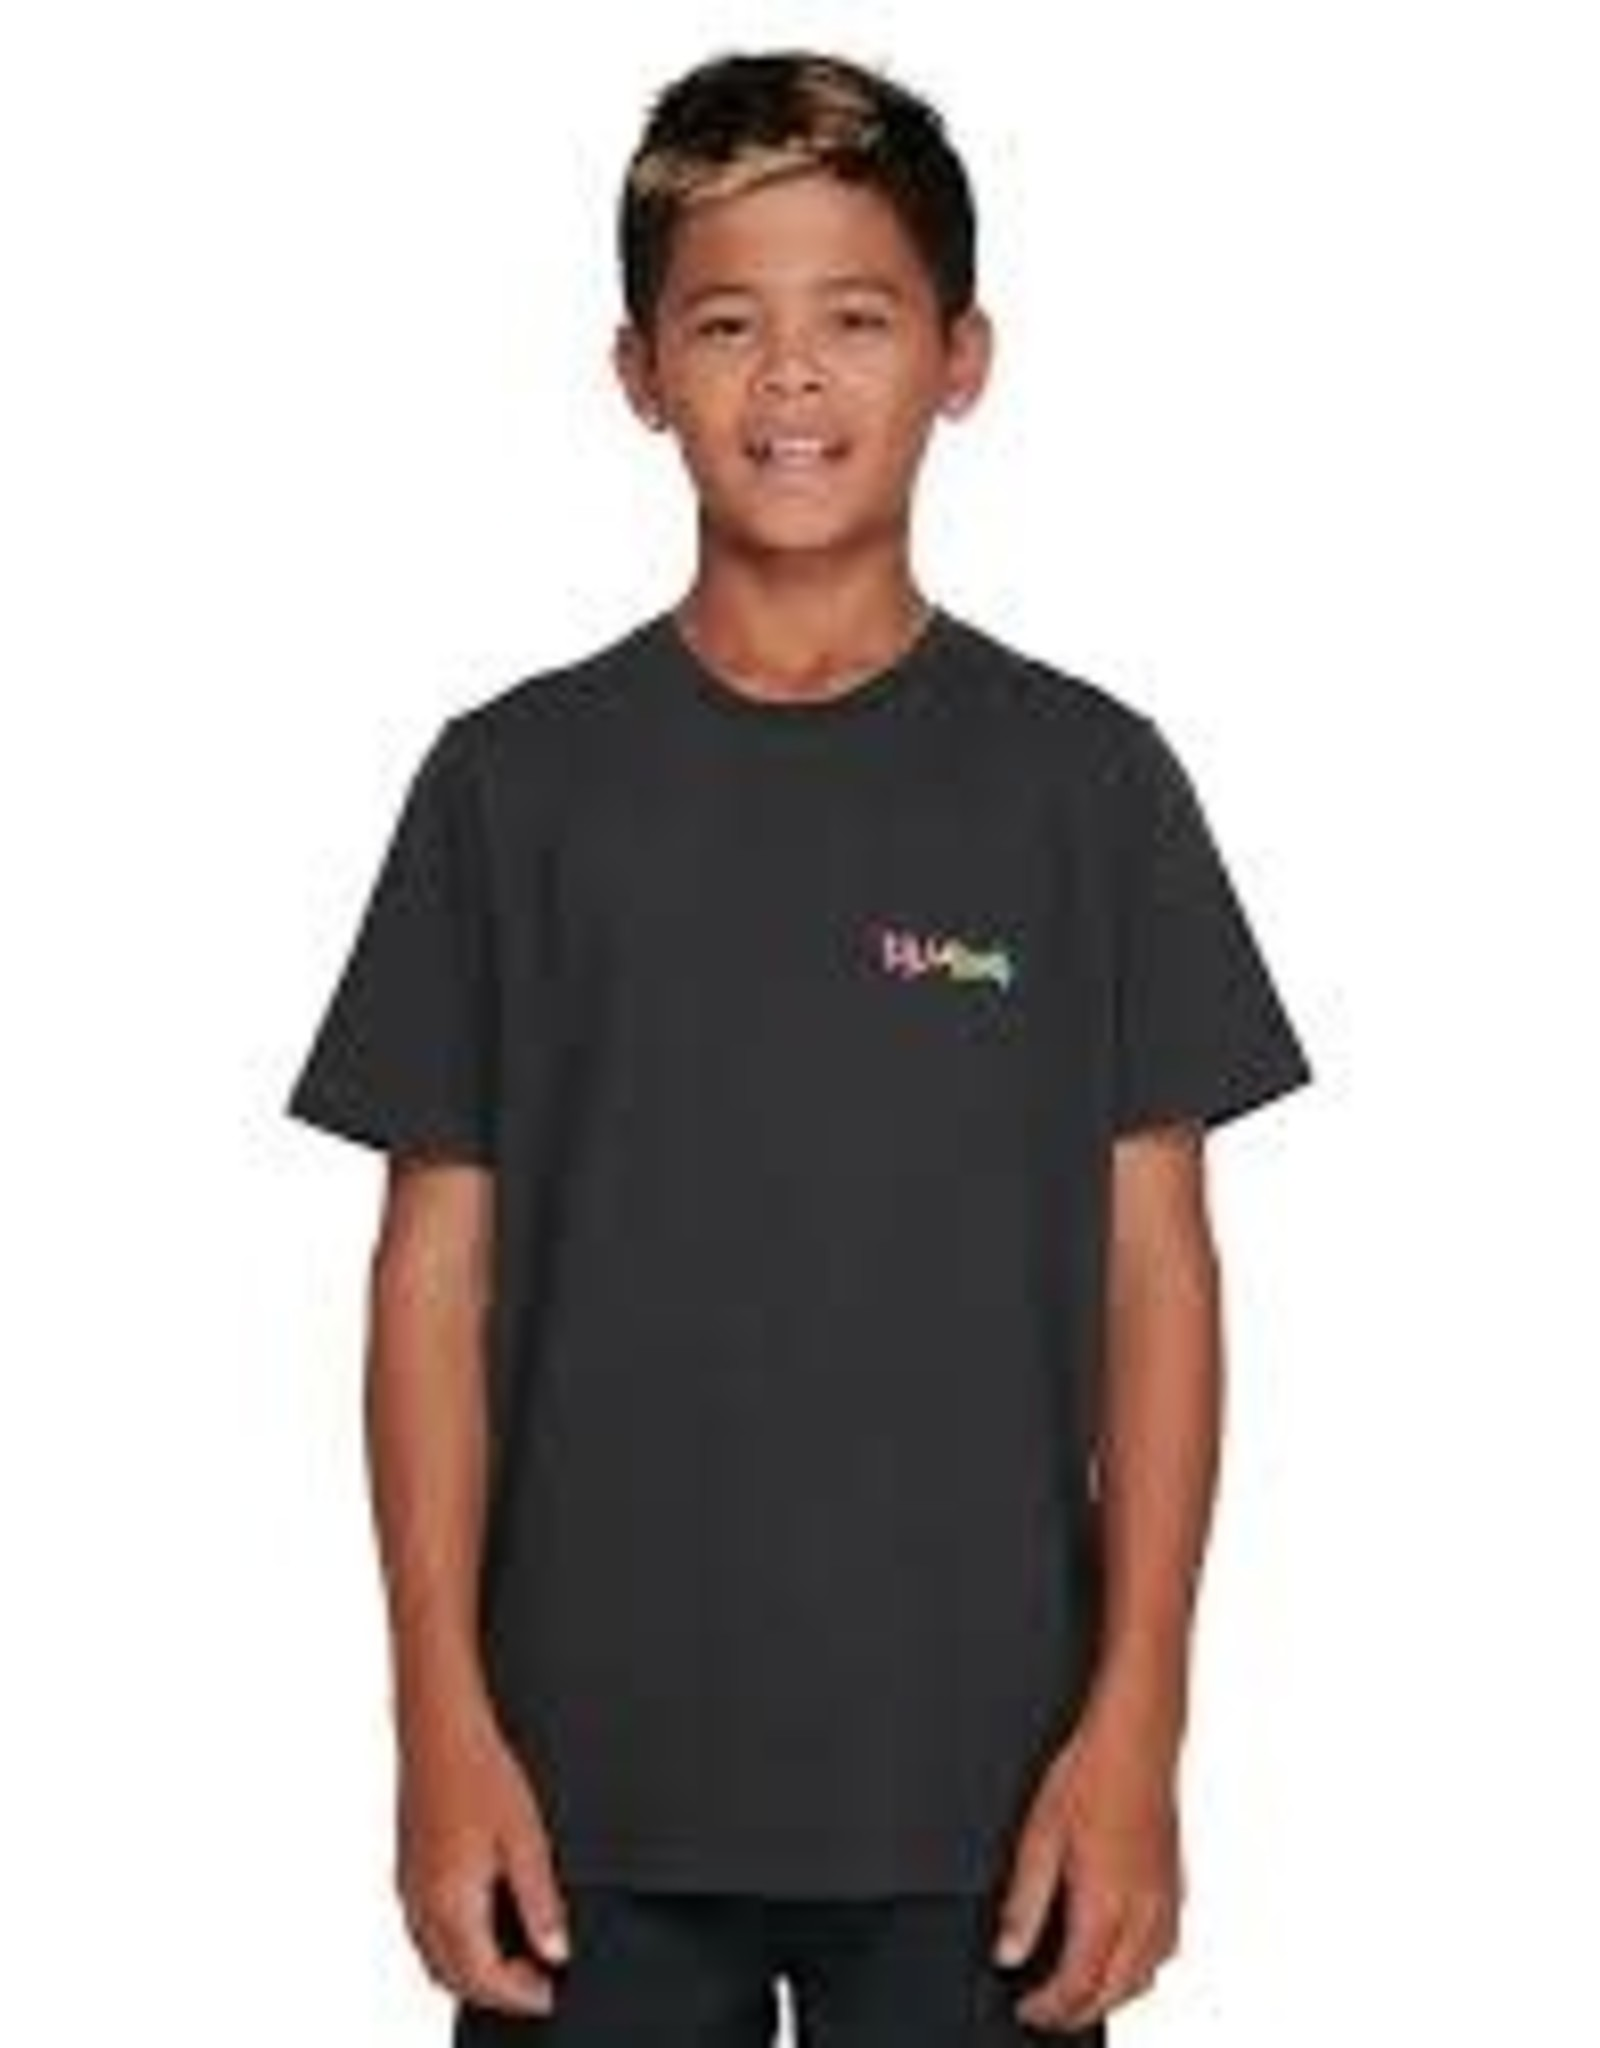 billabong billabong mondo boys s/s